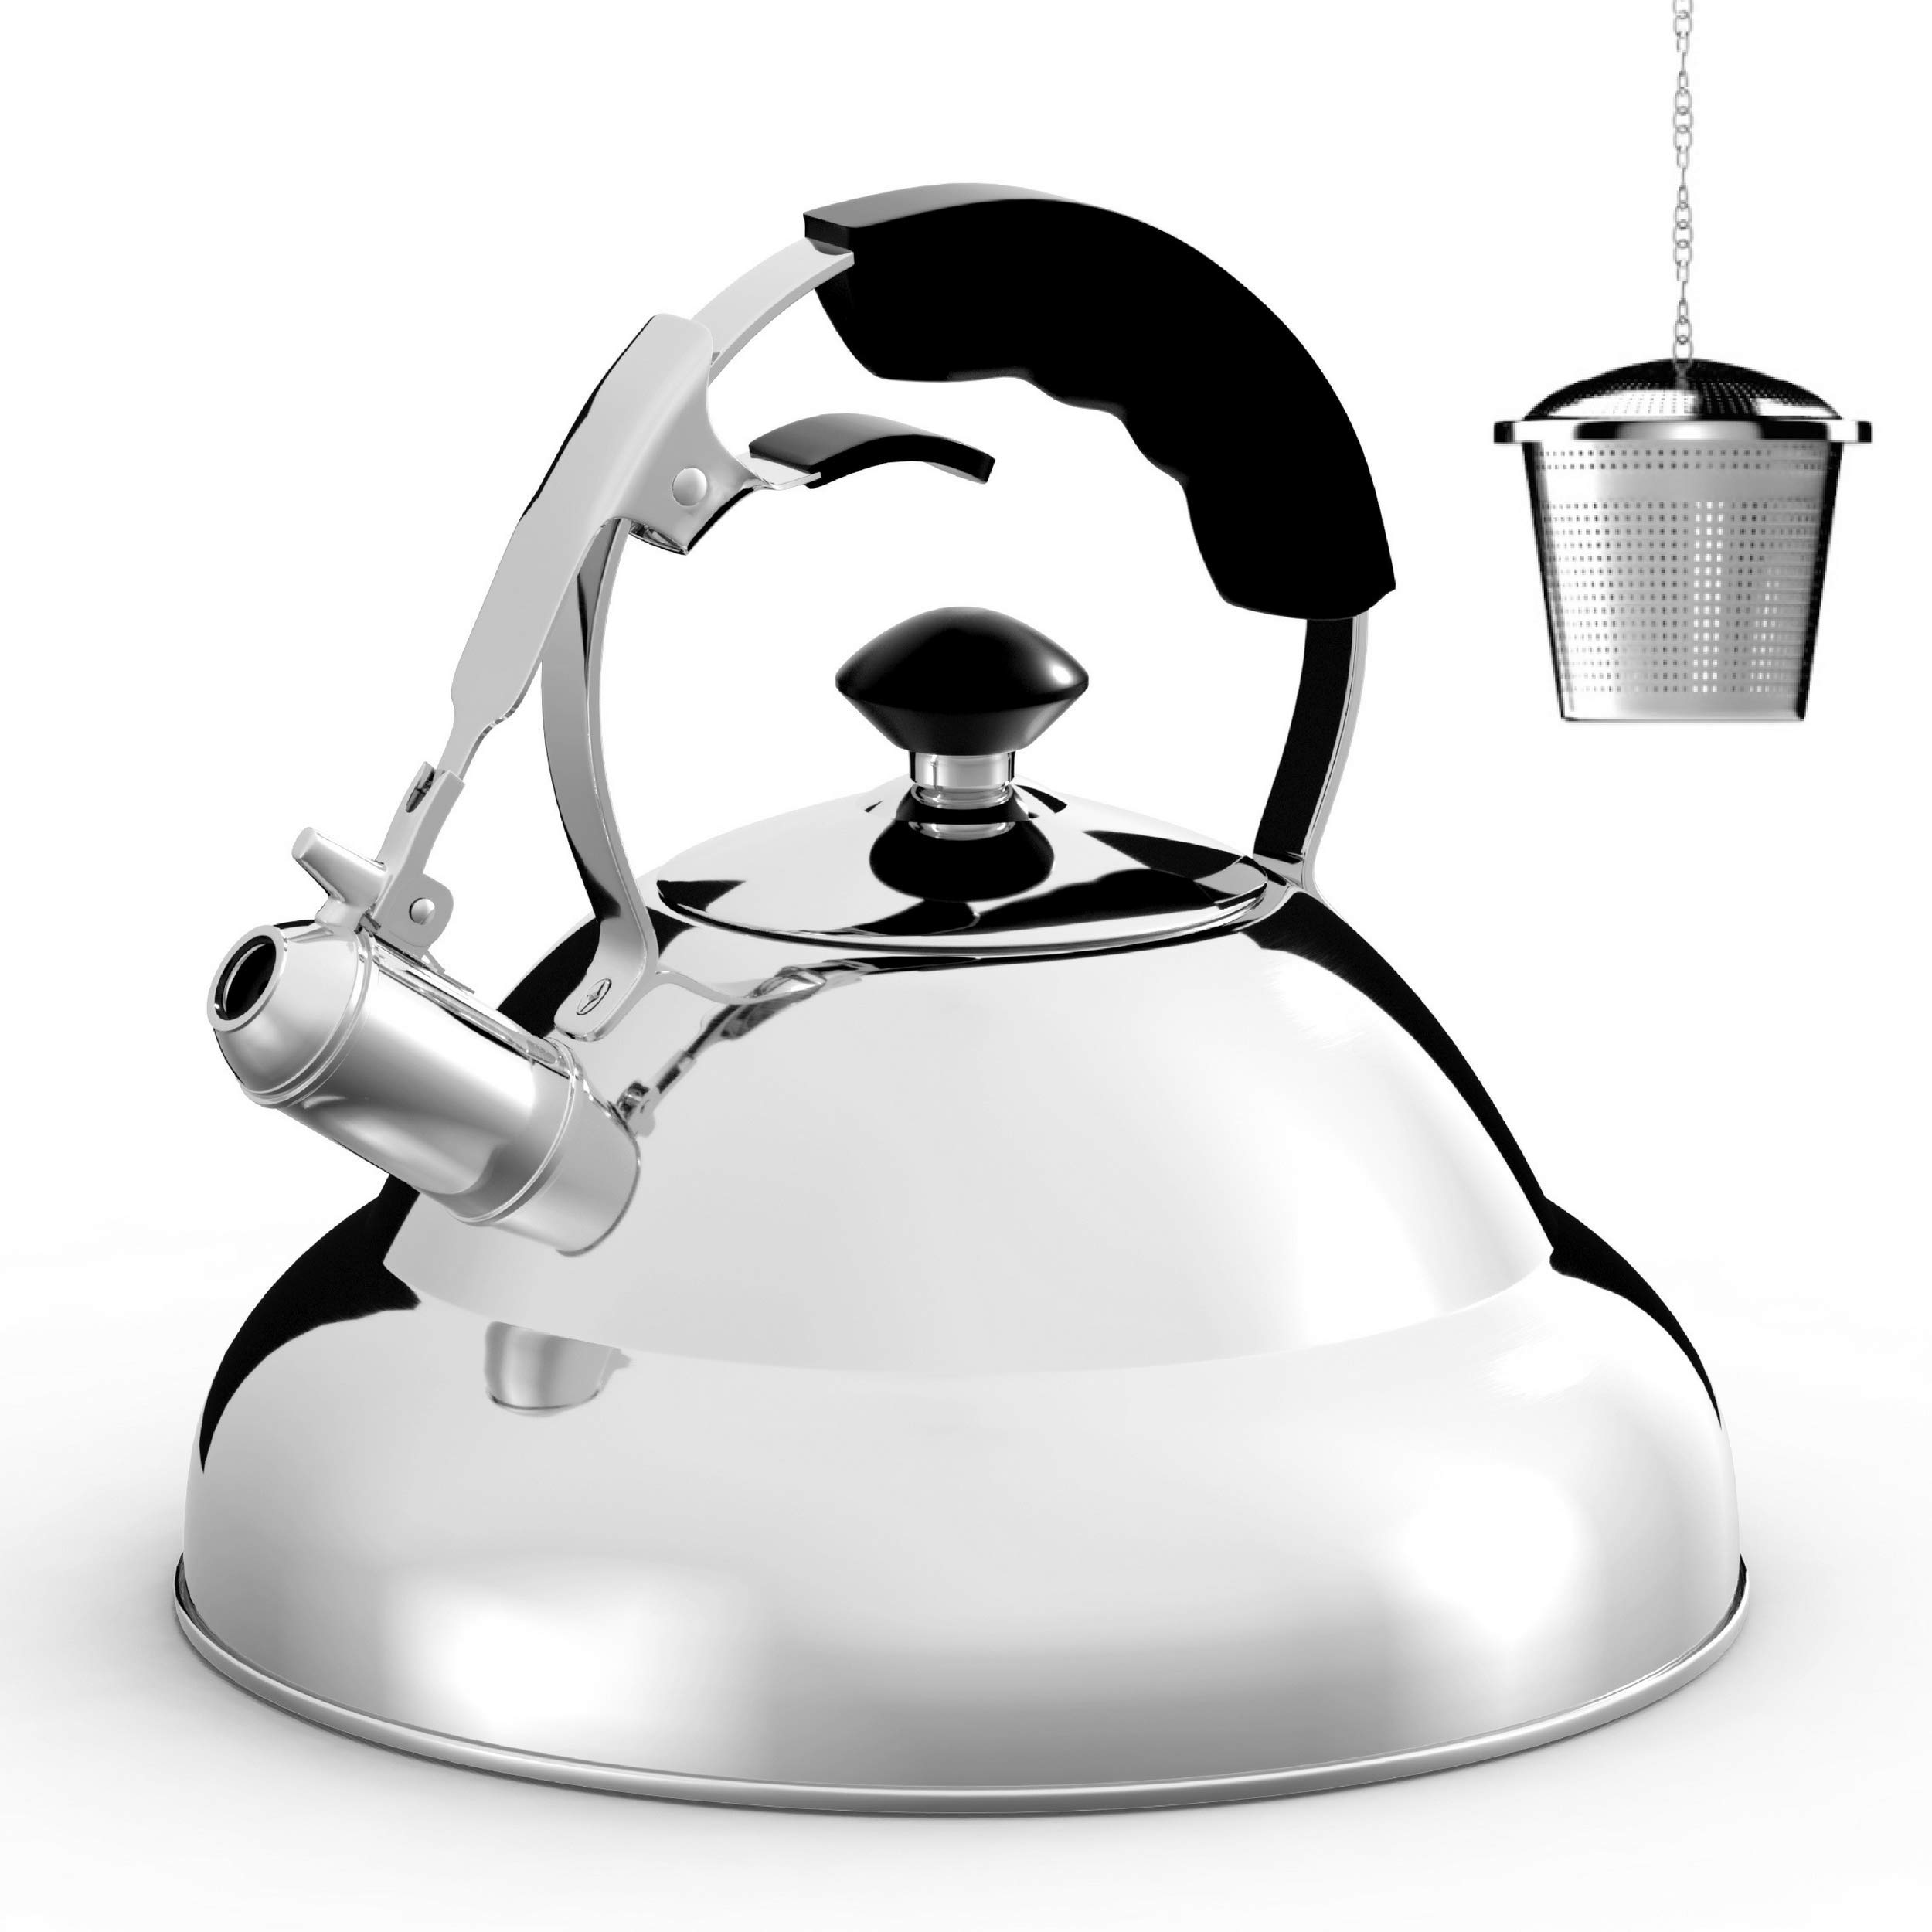 Tea Kettle - Surgical Whistling Teapot with Capsule Bottom and Mirror Finish, 2.75 Quart Tea Pot - Stove Top Tea Maker Infuser Teapots Strainer Included (Single Handle) by Willow & Everett (Image #1)